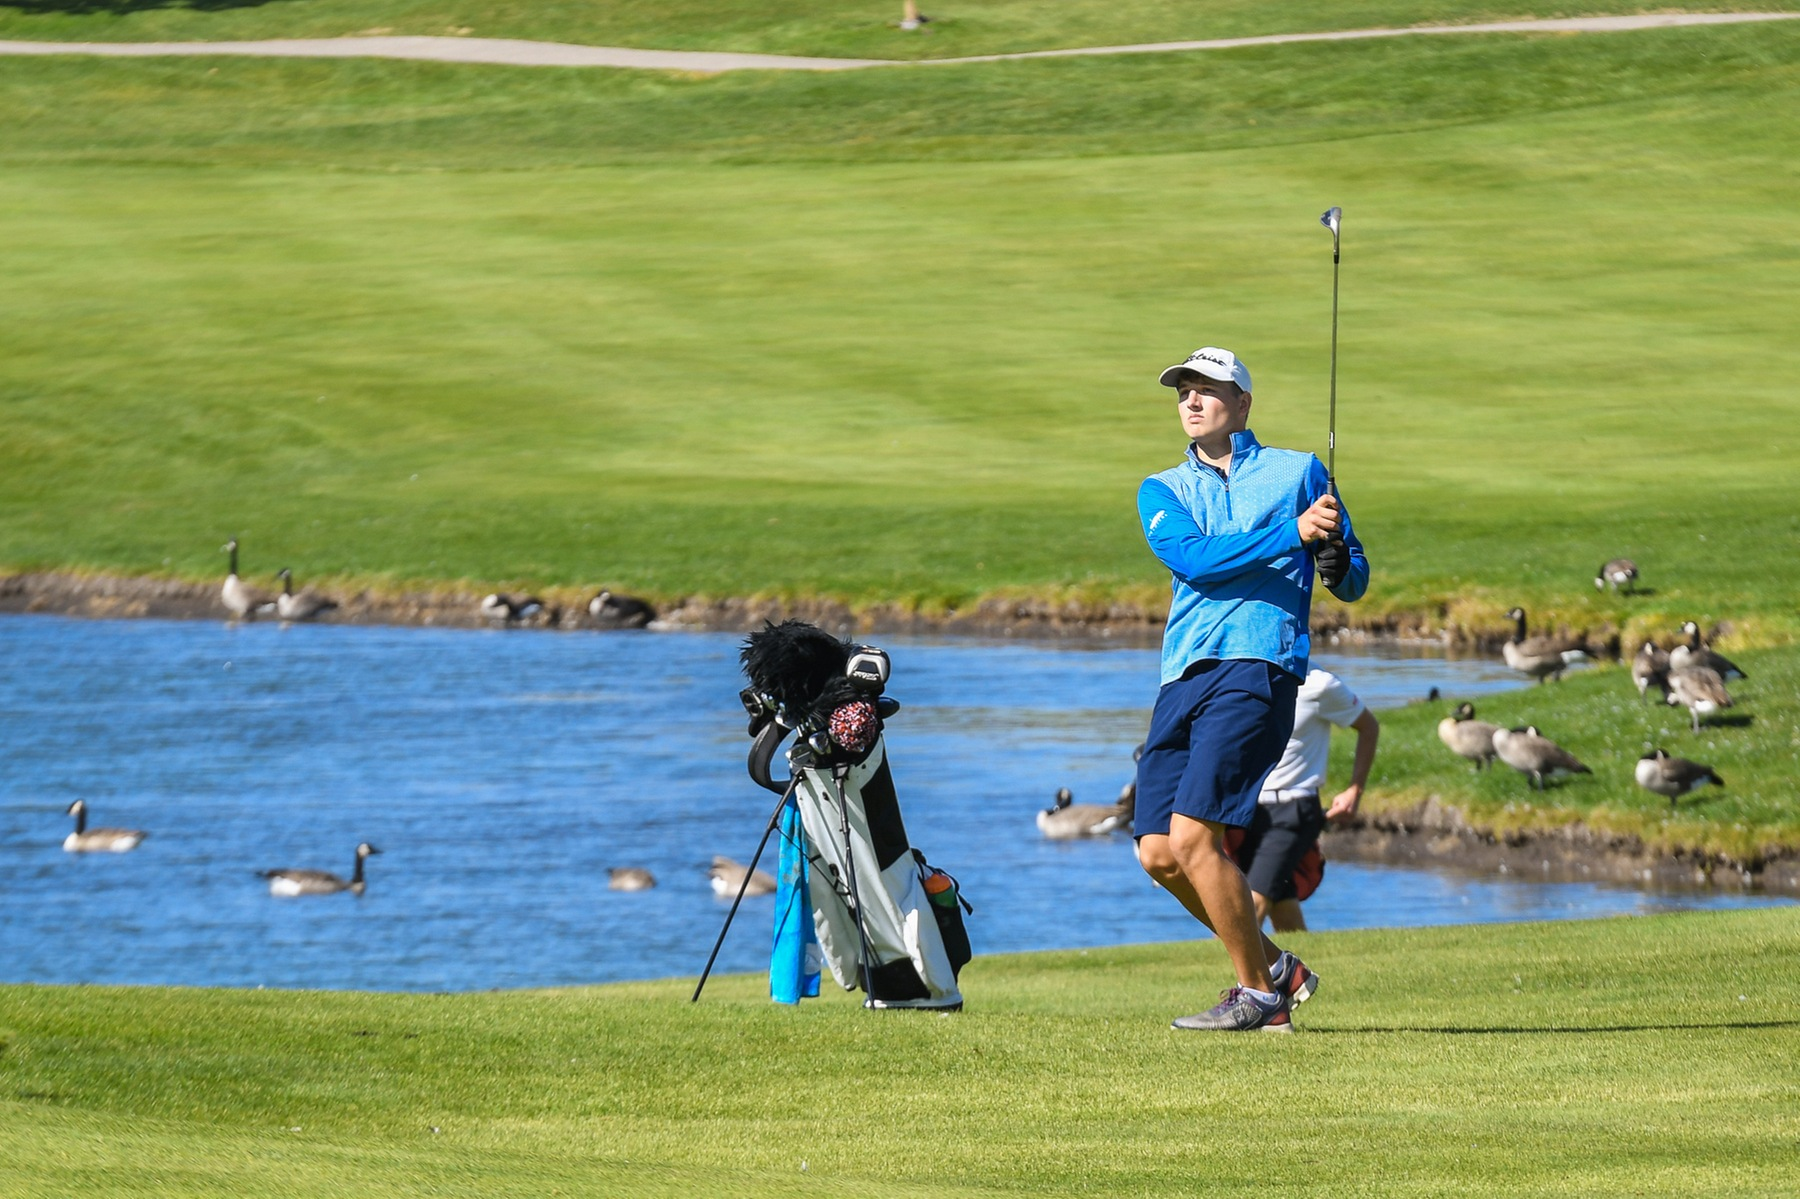 KCC golfers dominate Eagle Fall Classic